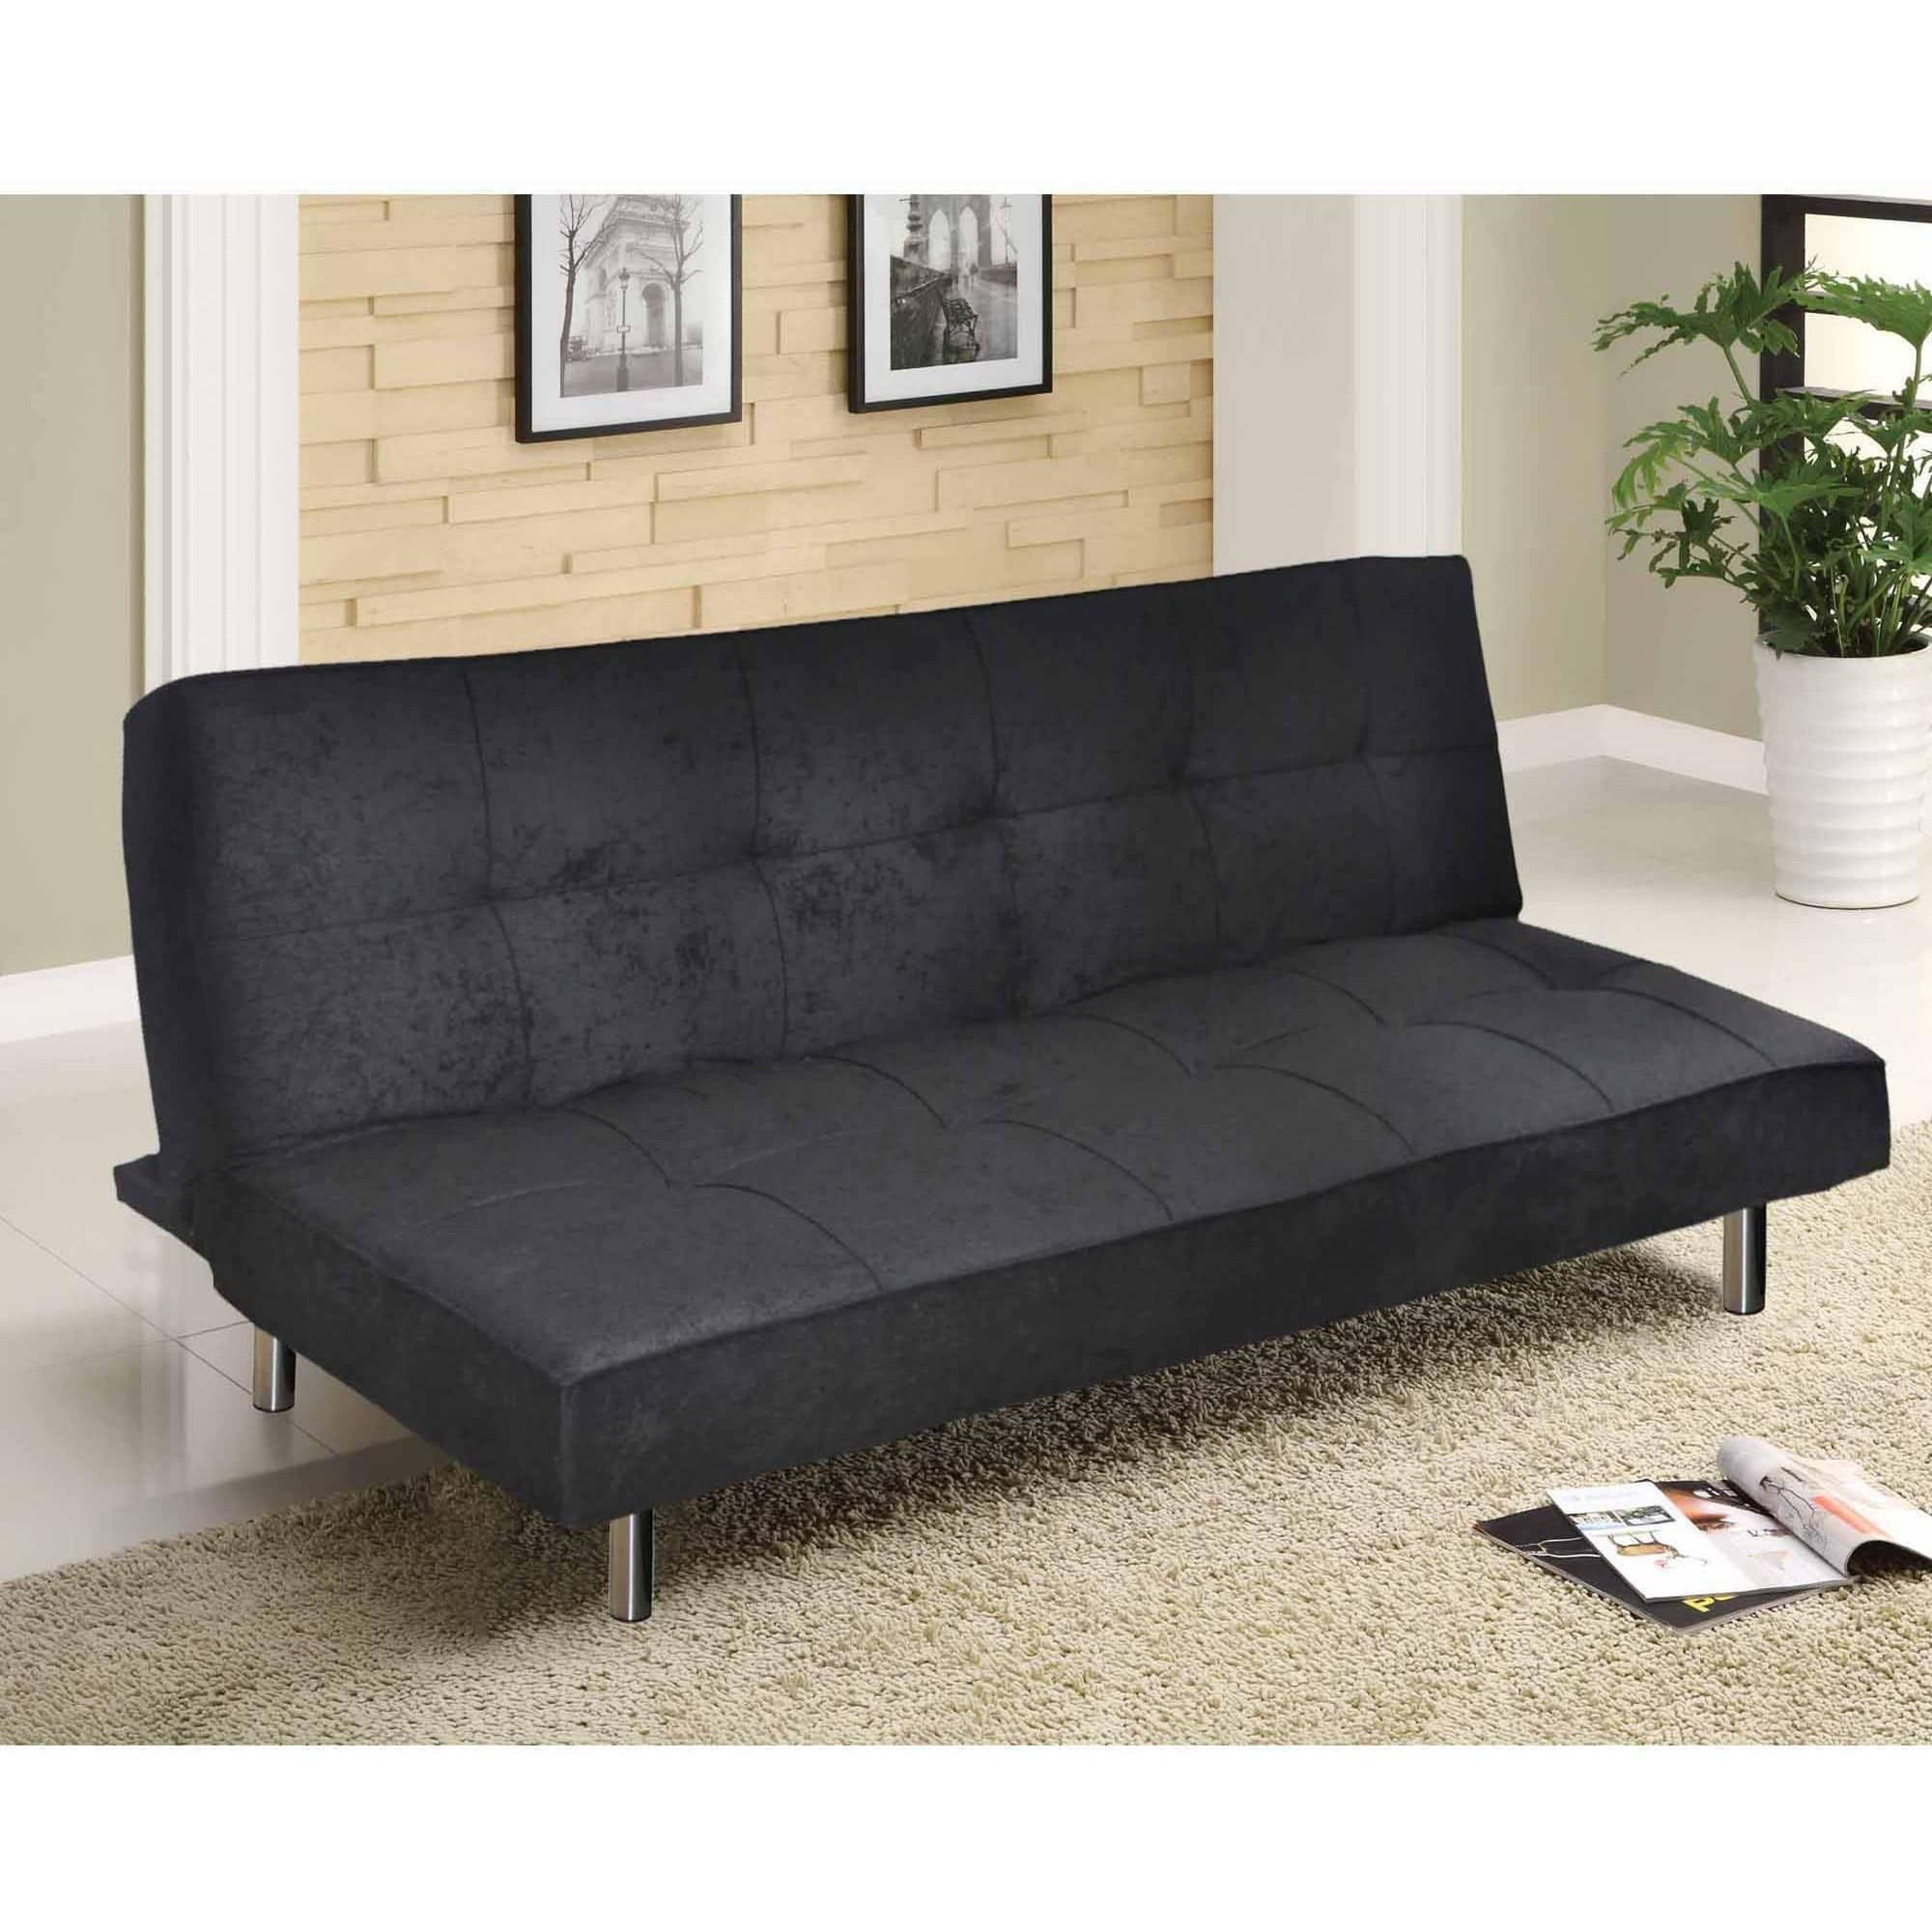 Best Choice Products Modern Entertainment Futon Sofa Bed Fold Up For Futon Couch Beds (Image 6 of 20)